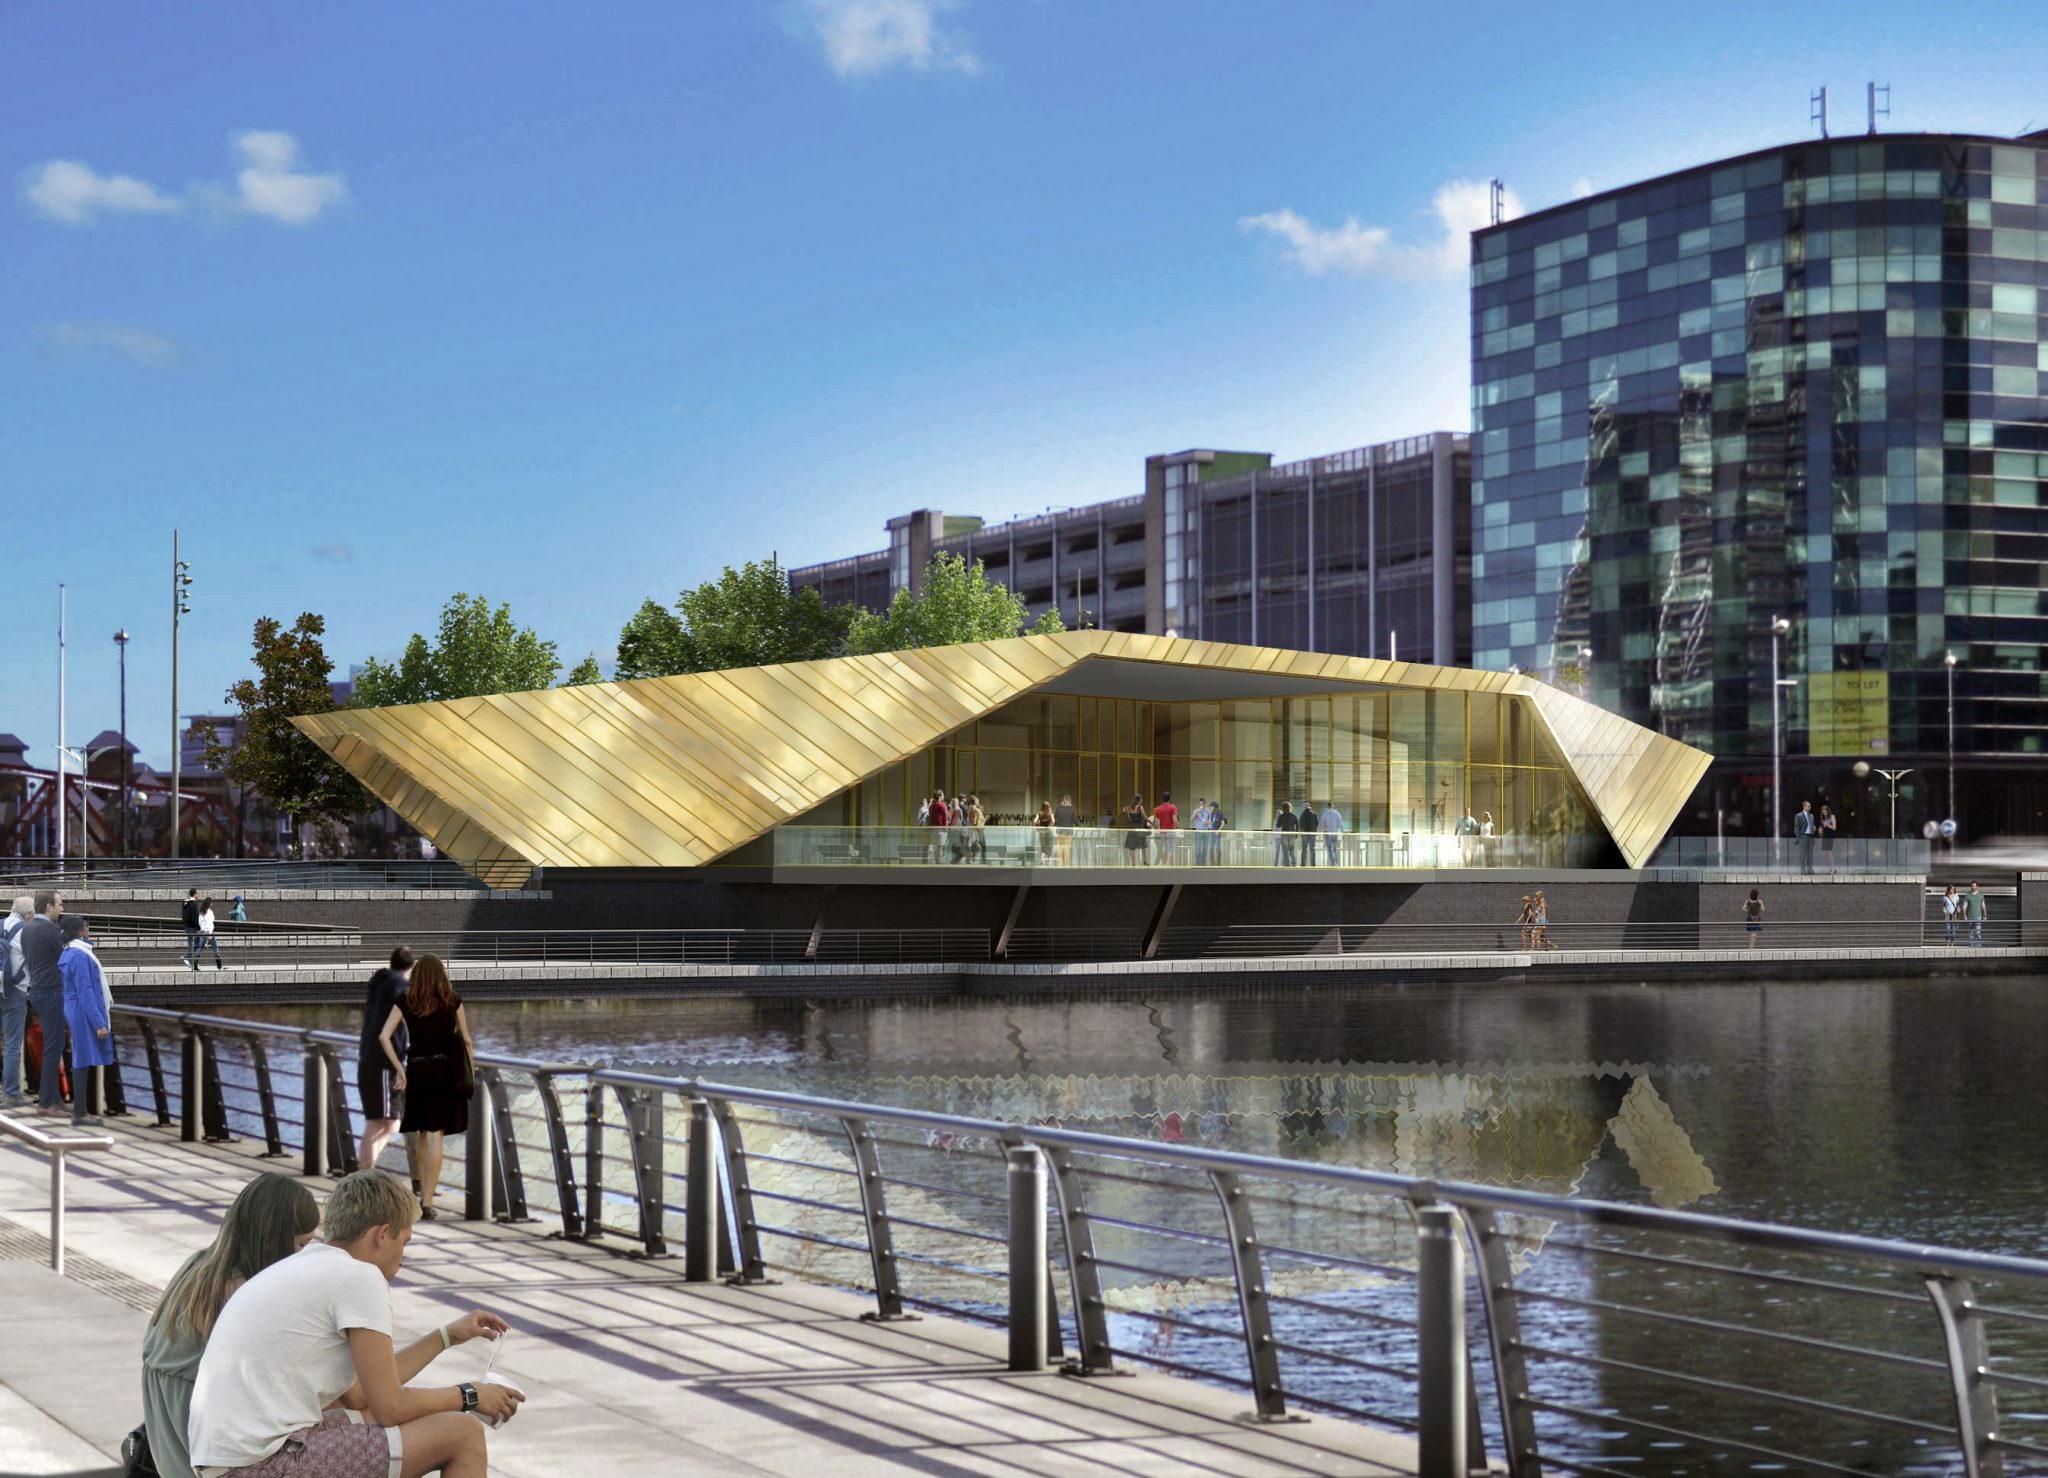 The Alchemist eyes Mancunian expansion at lavish MediaCityUK venue